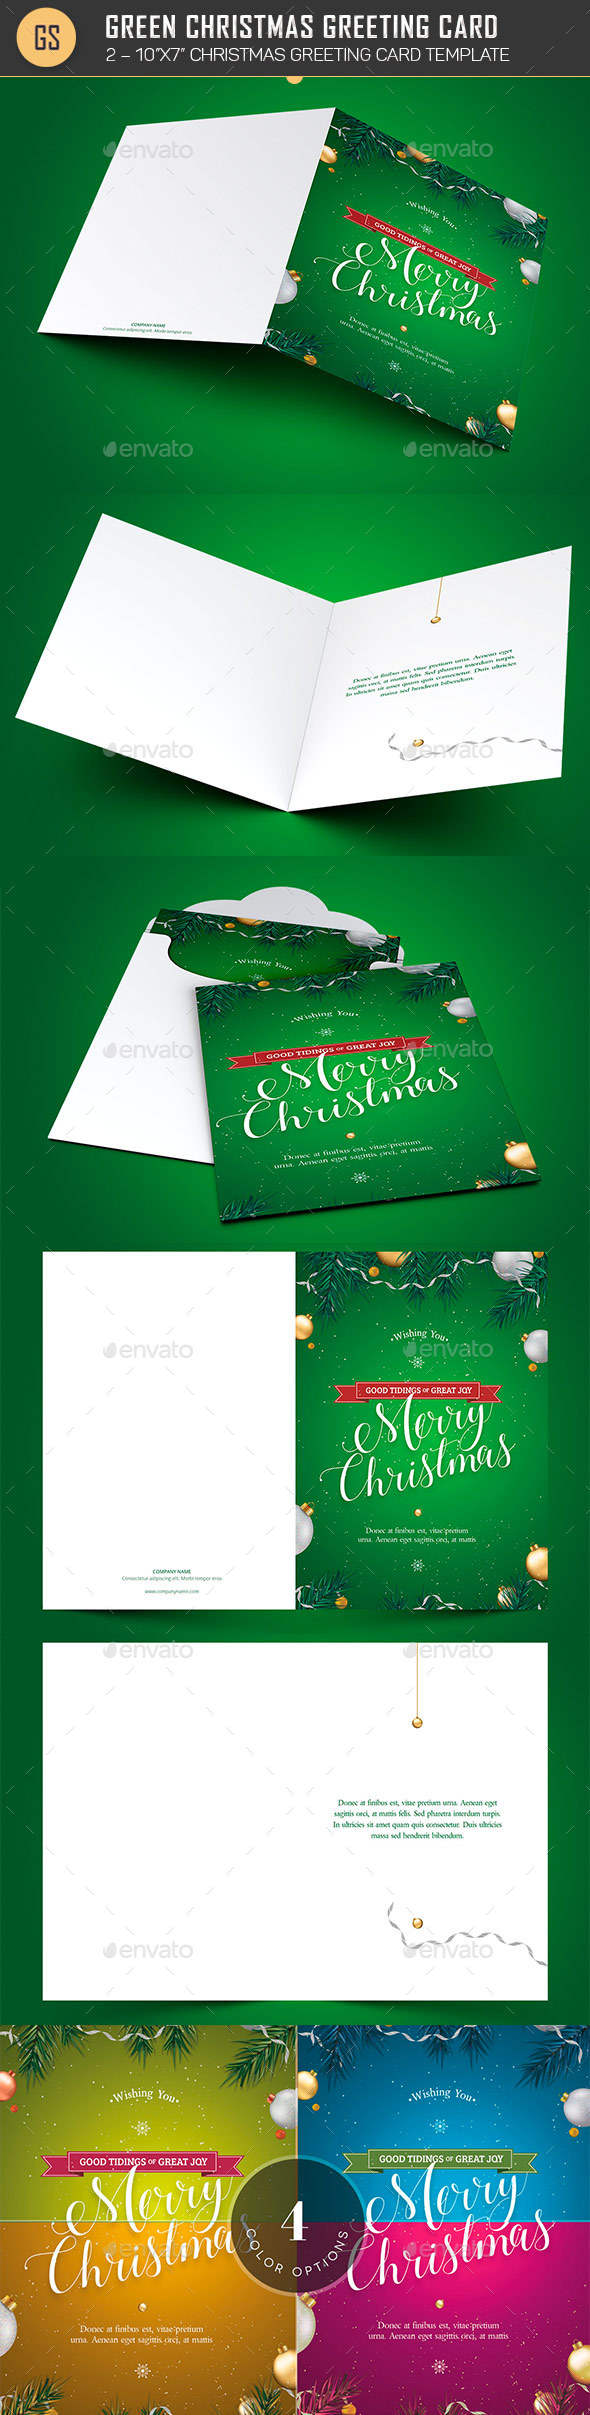 Green Christmas Greeting Card Template - Greeting Cards Cards & Invites